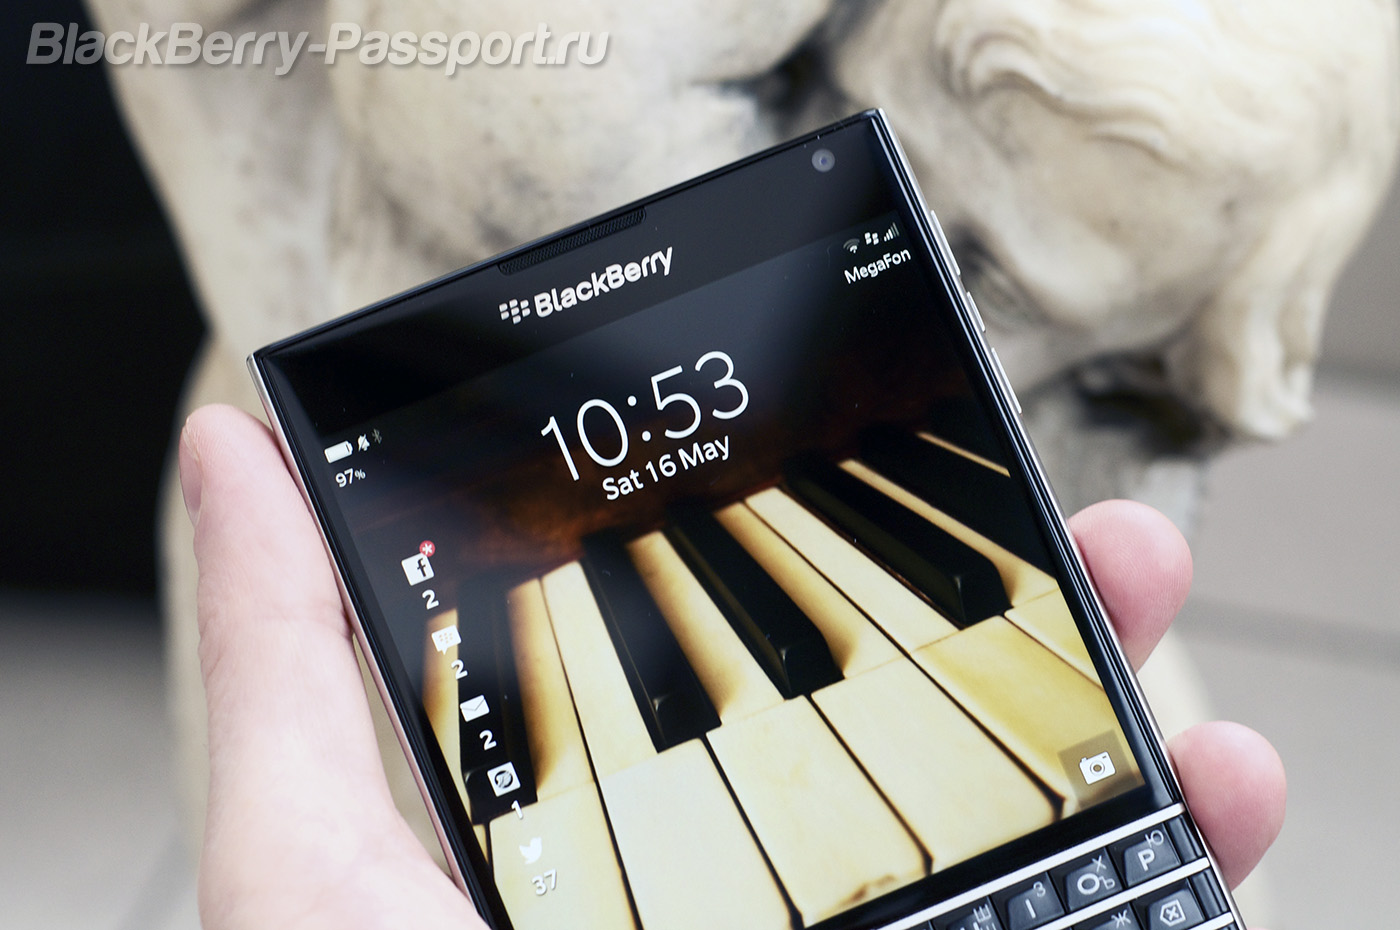 BlackBerry-Passport-BP-2-6